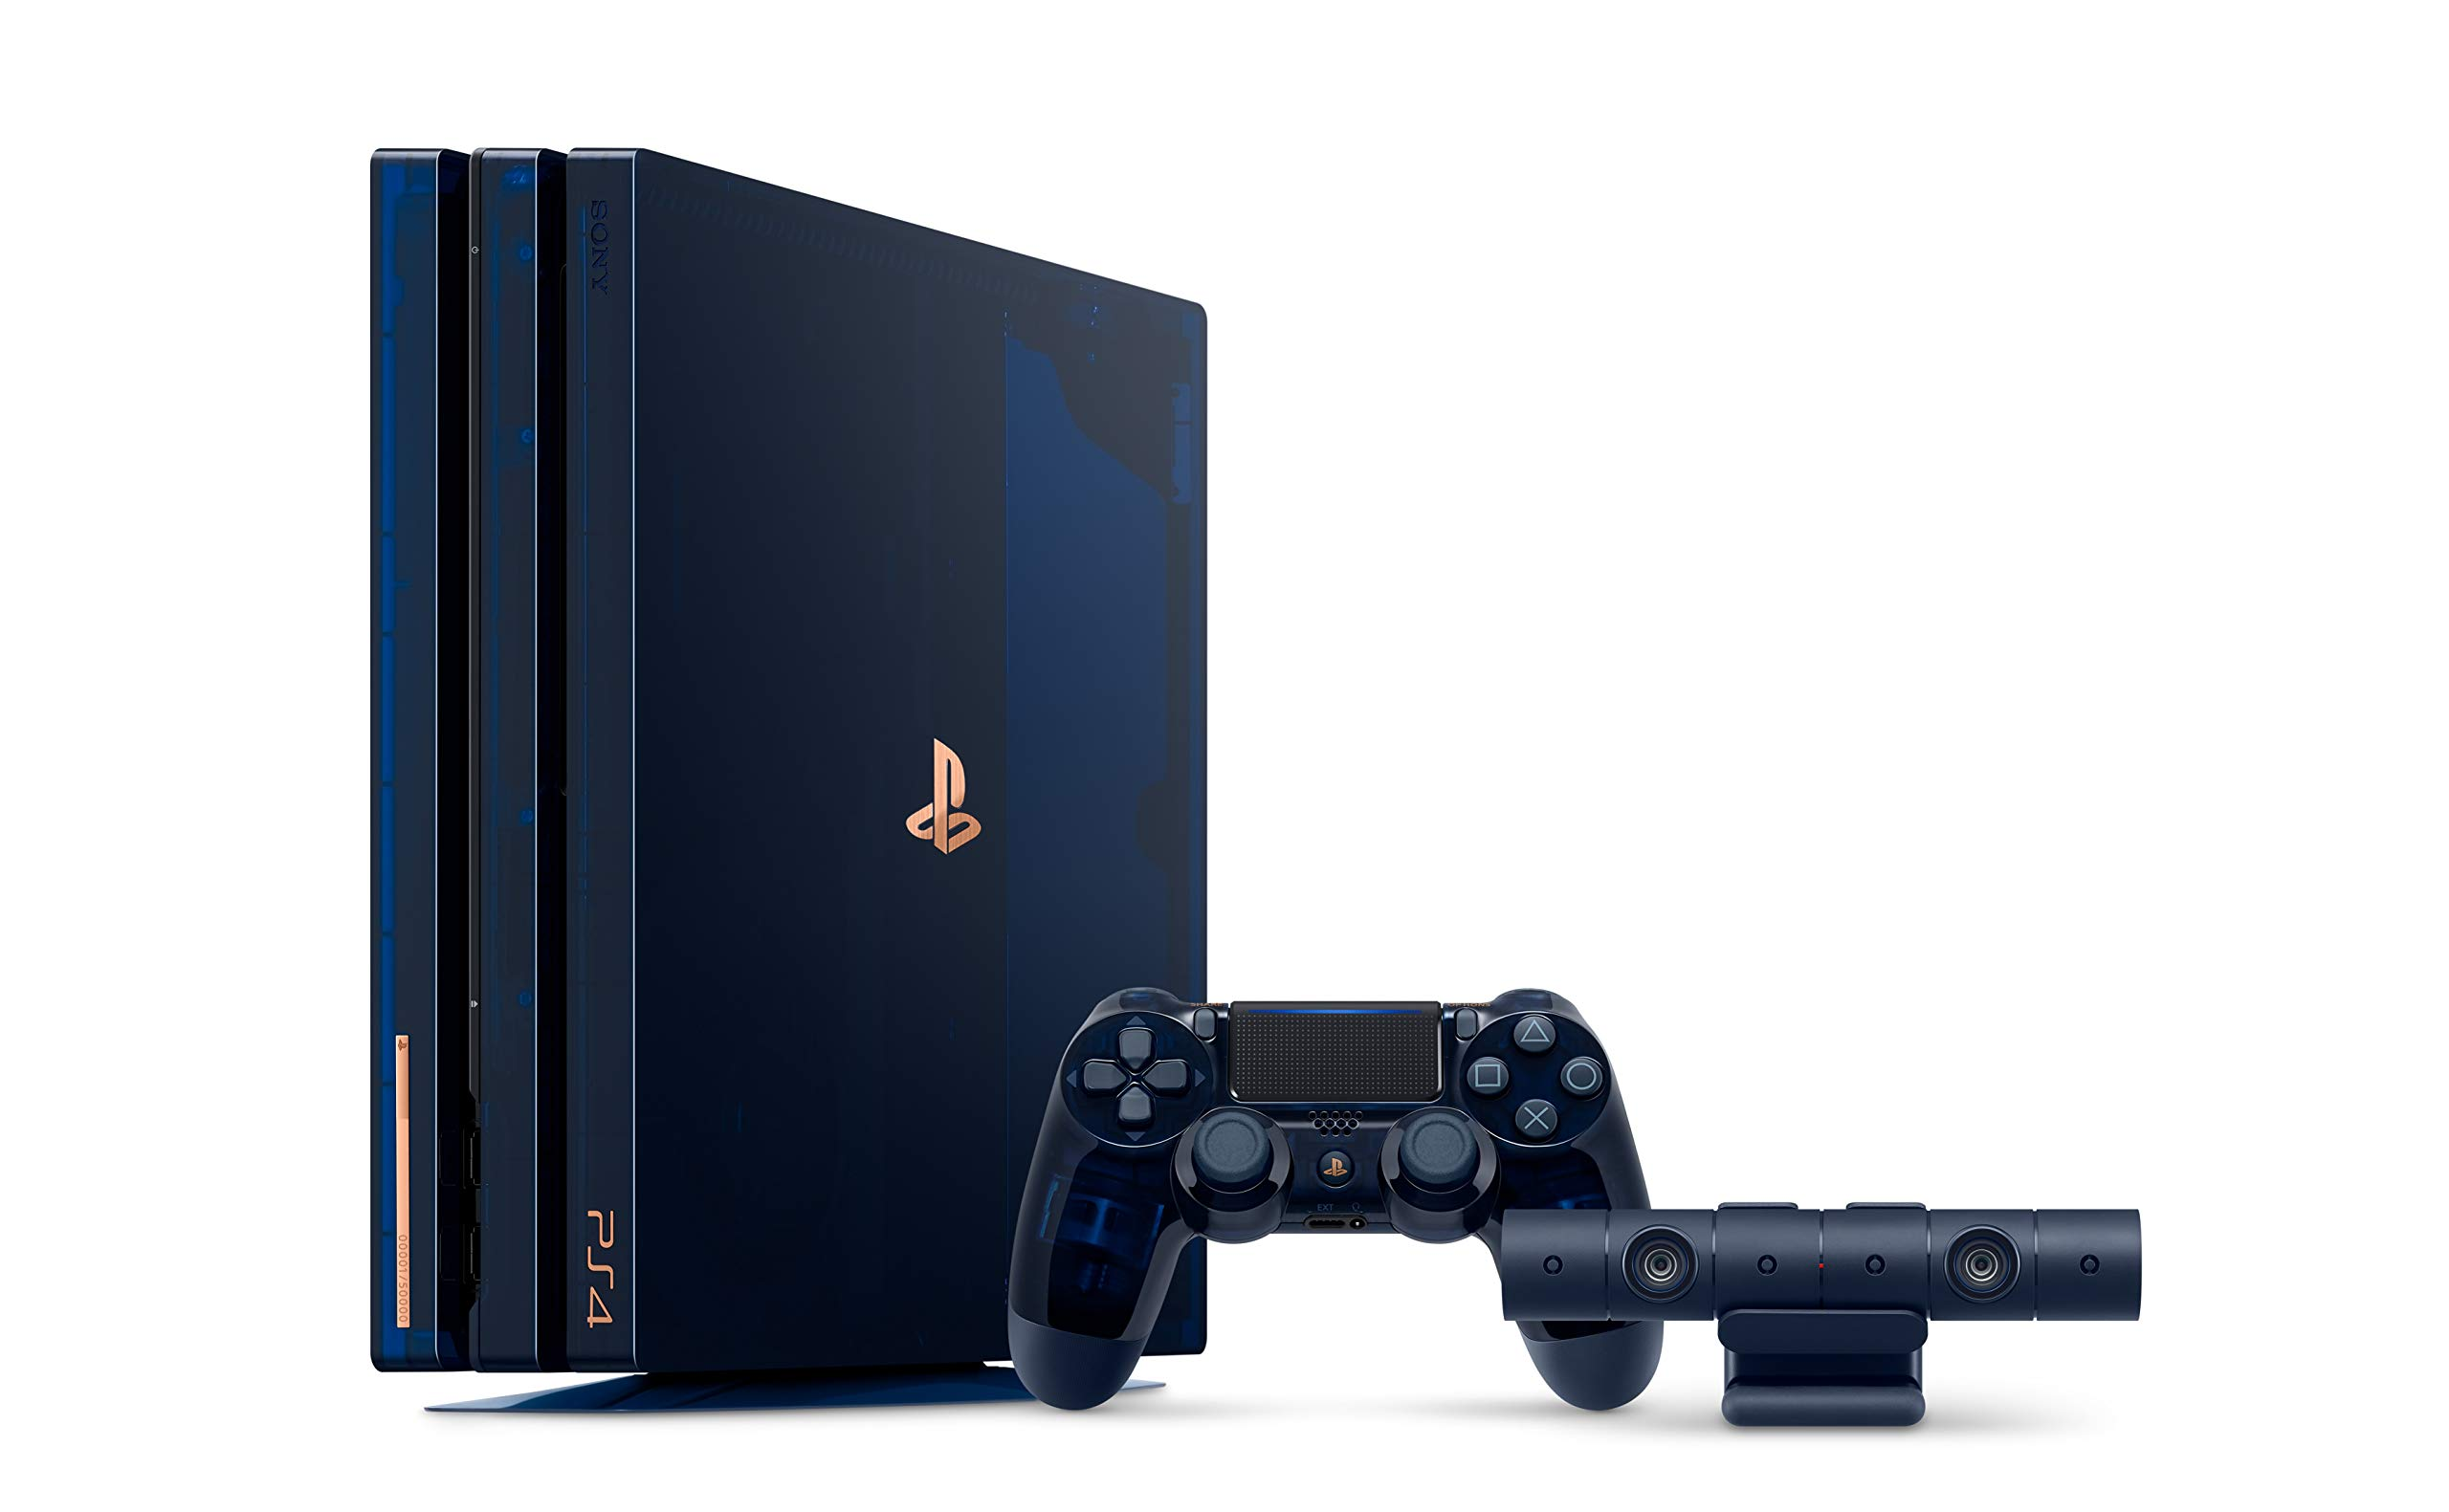 PlayStation 4 Pro 2TB Limited Edition Console – 500 Million Bundle [Discontinued]